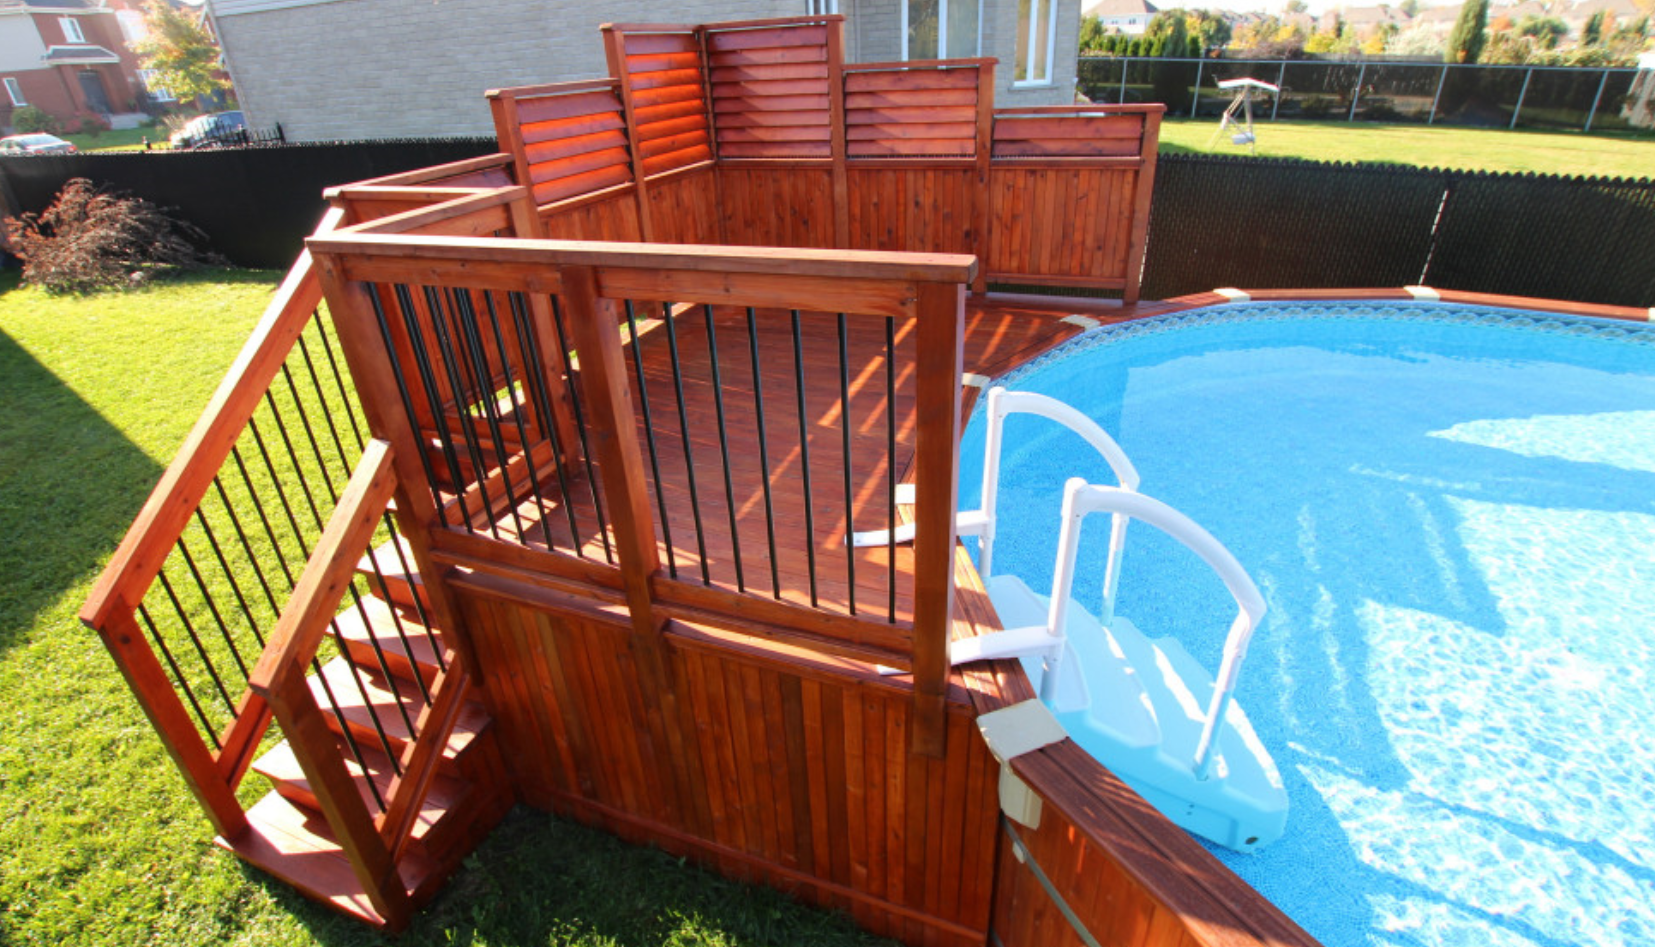 Beautiful Above Ground Pool Sectioned Louvered Privacy Fence Perfect For Minimal Privacy Neede Backyard Pool Landscaping Above Ground Pool Decks Backyard Pool